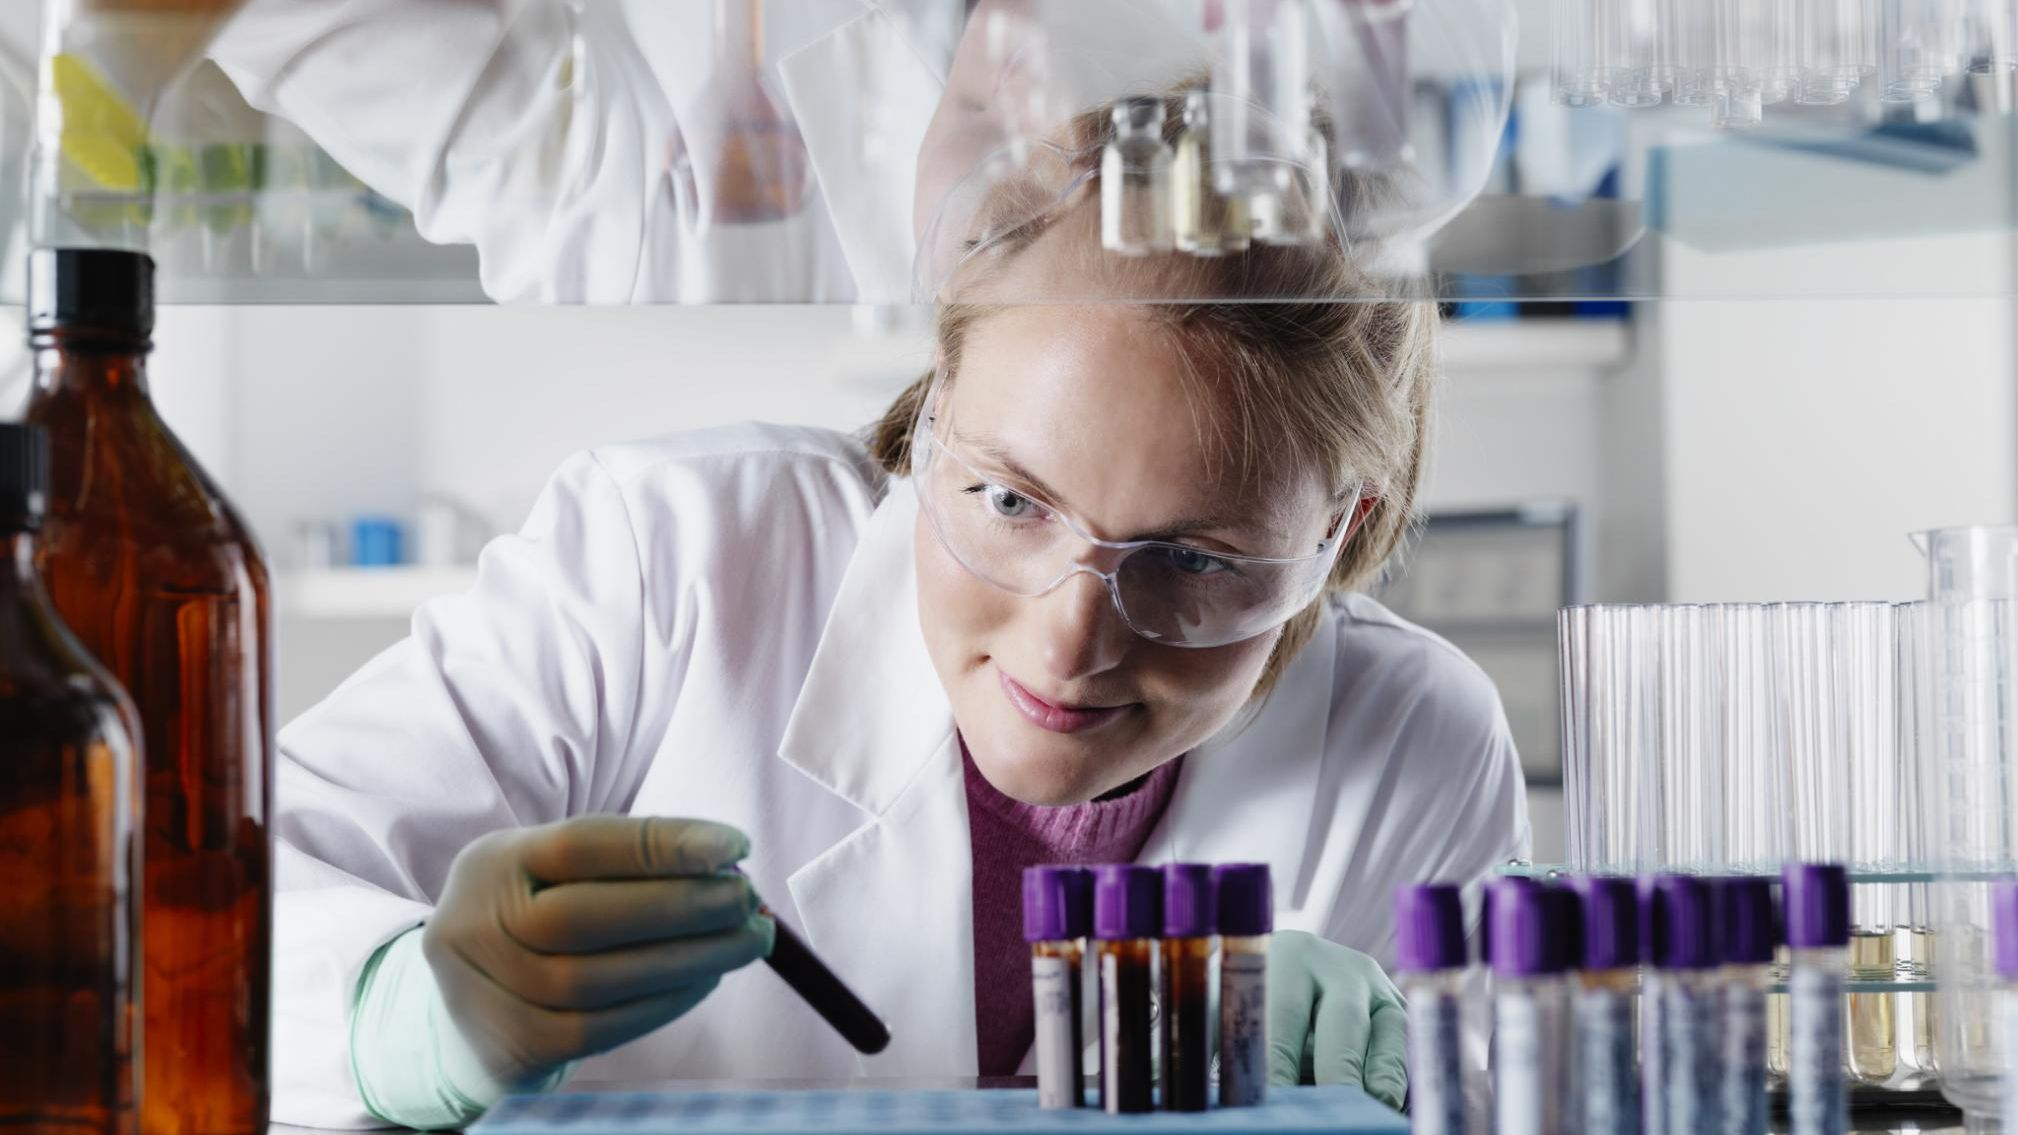 Medical Technologist Expertise Specialities And Training